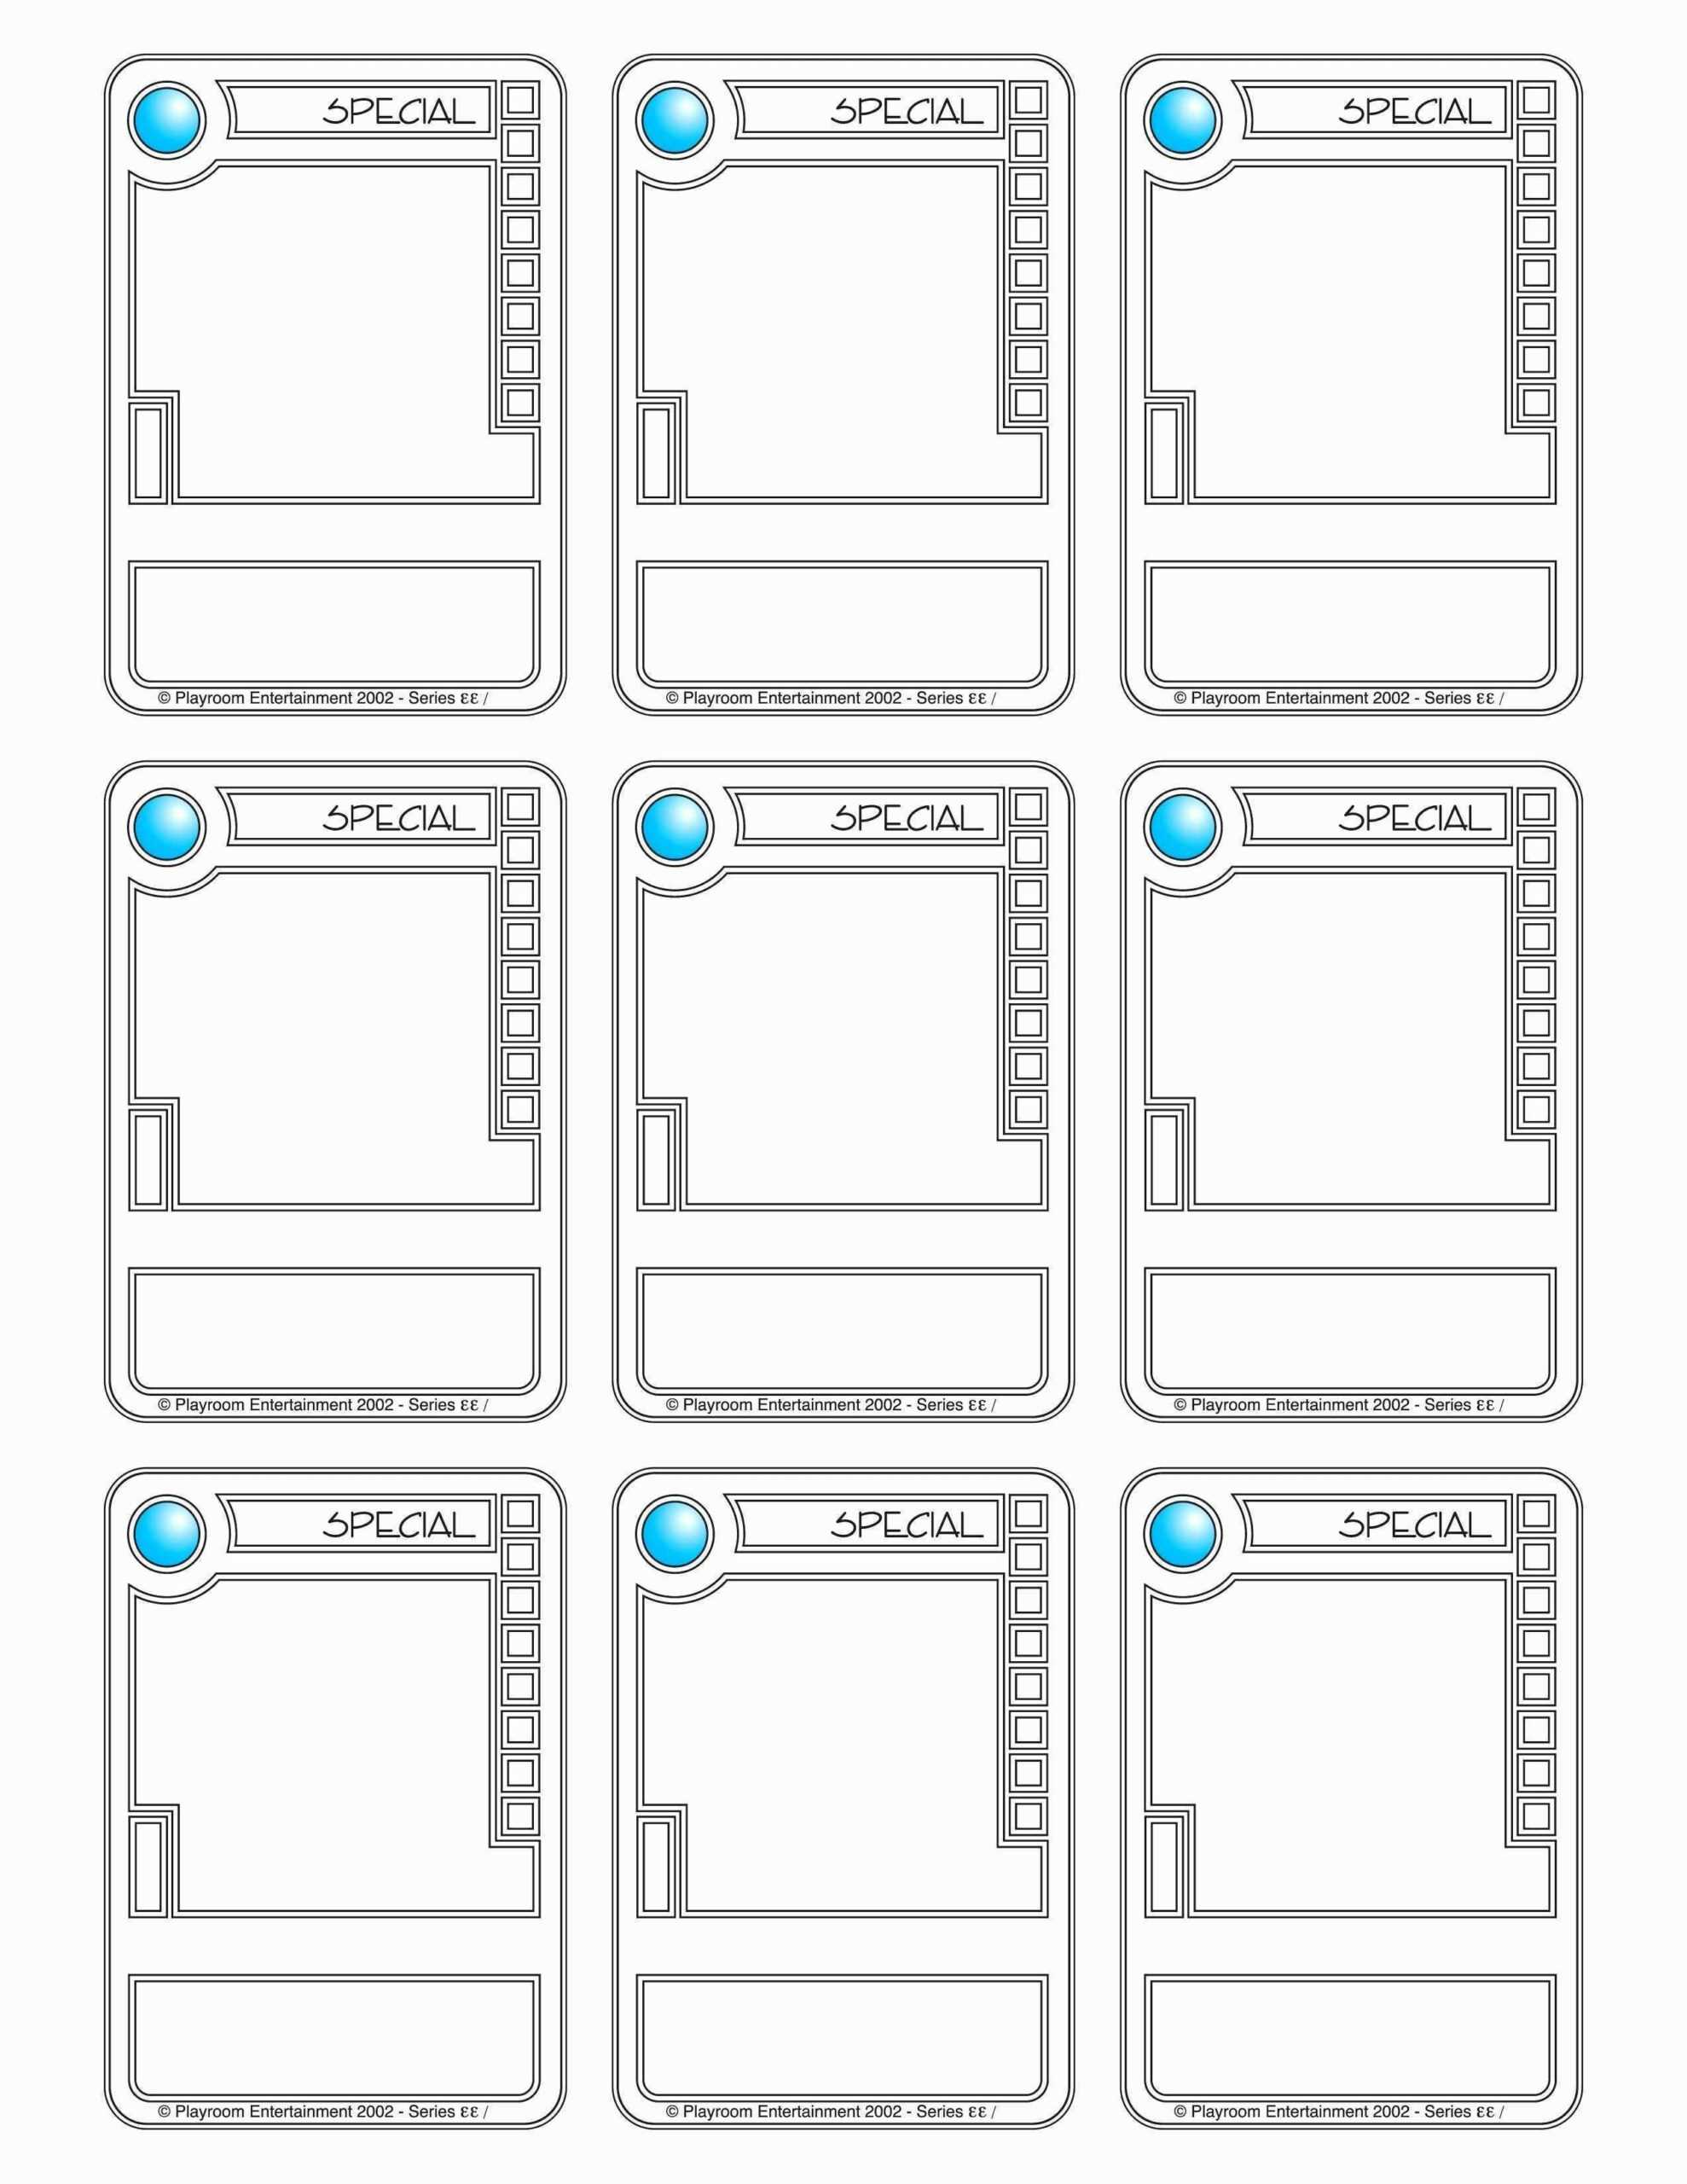 001 Trading Card Maker Free Examples Template For Success In With Card Game Template Maker